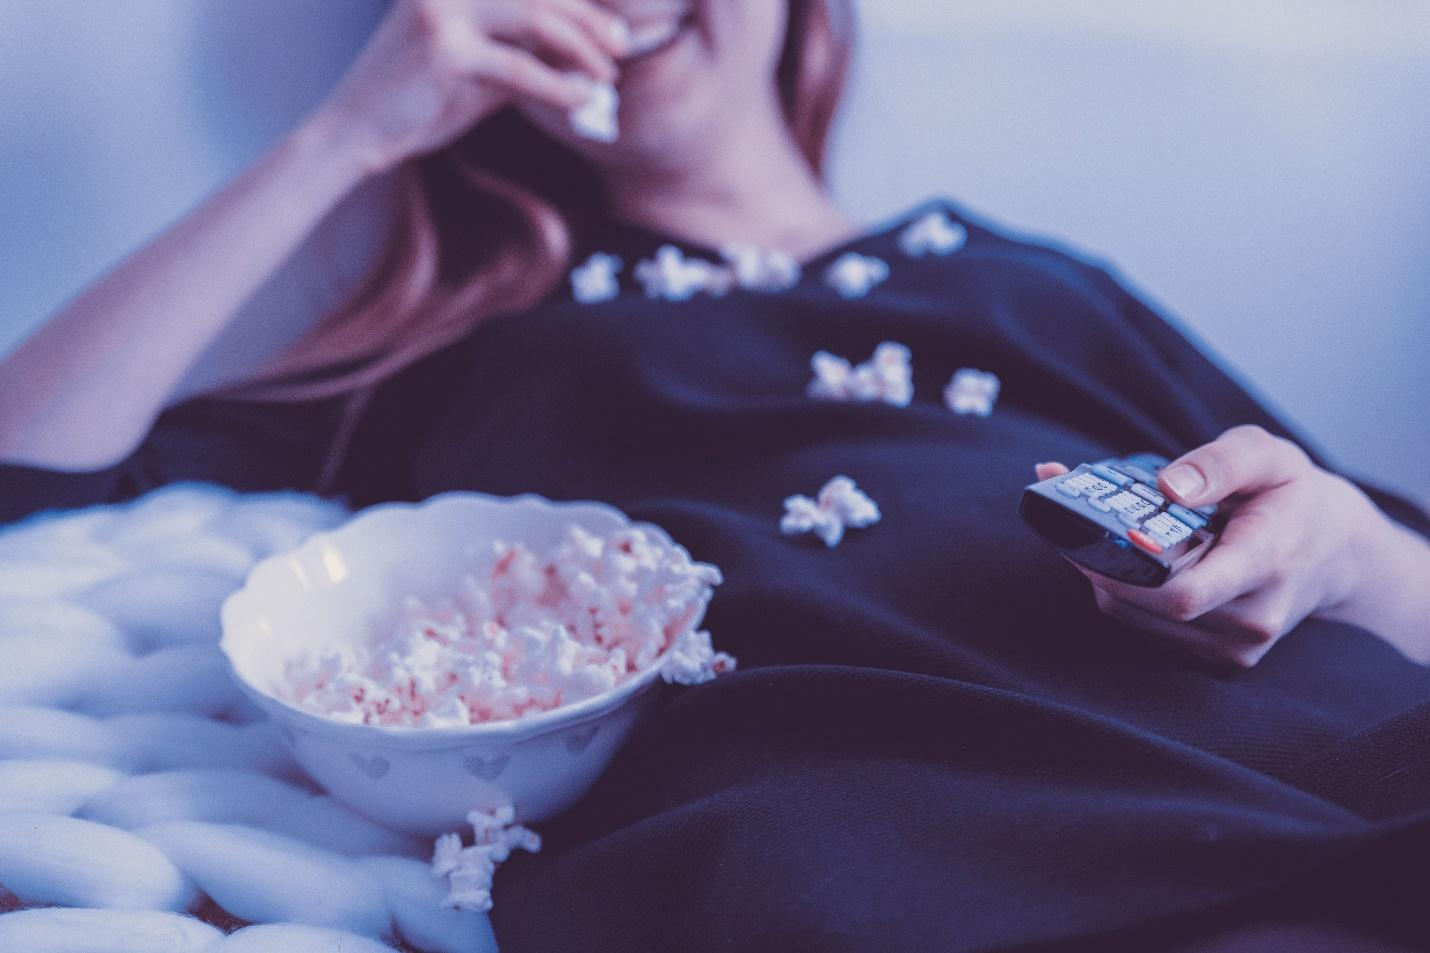 Binge watching tv with snacks; be sure to not watch too much tv and overdo it